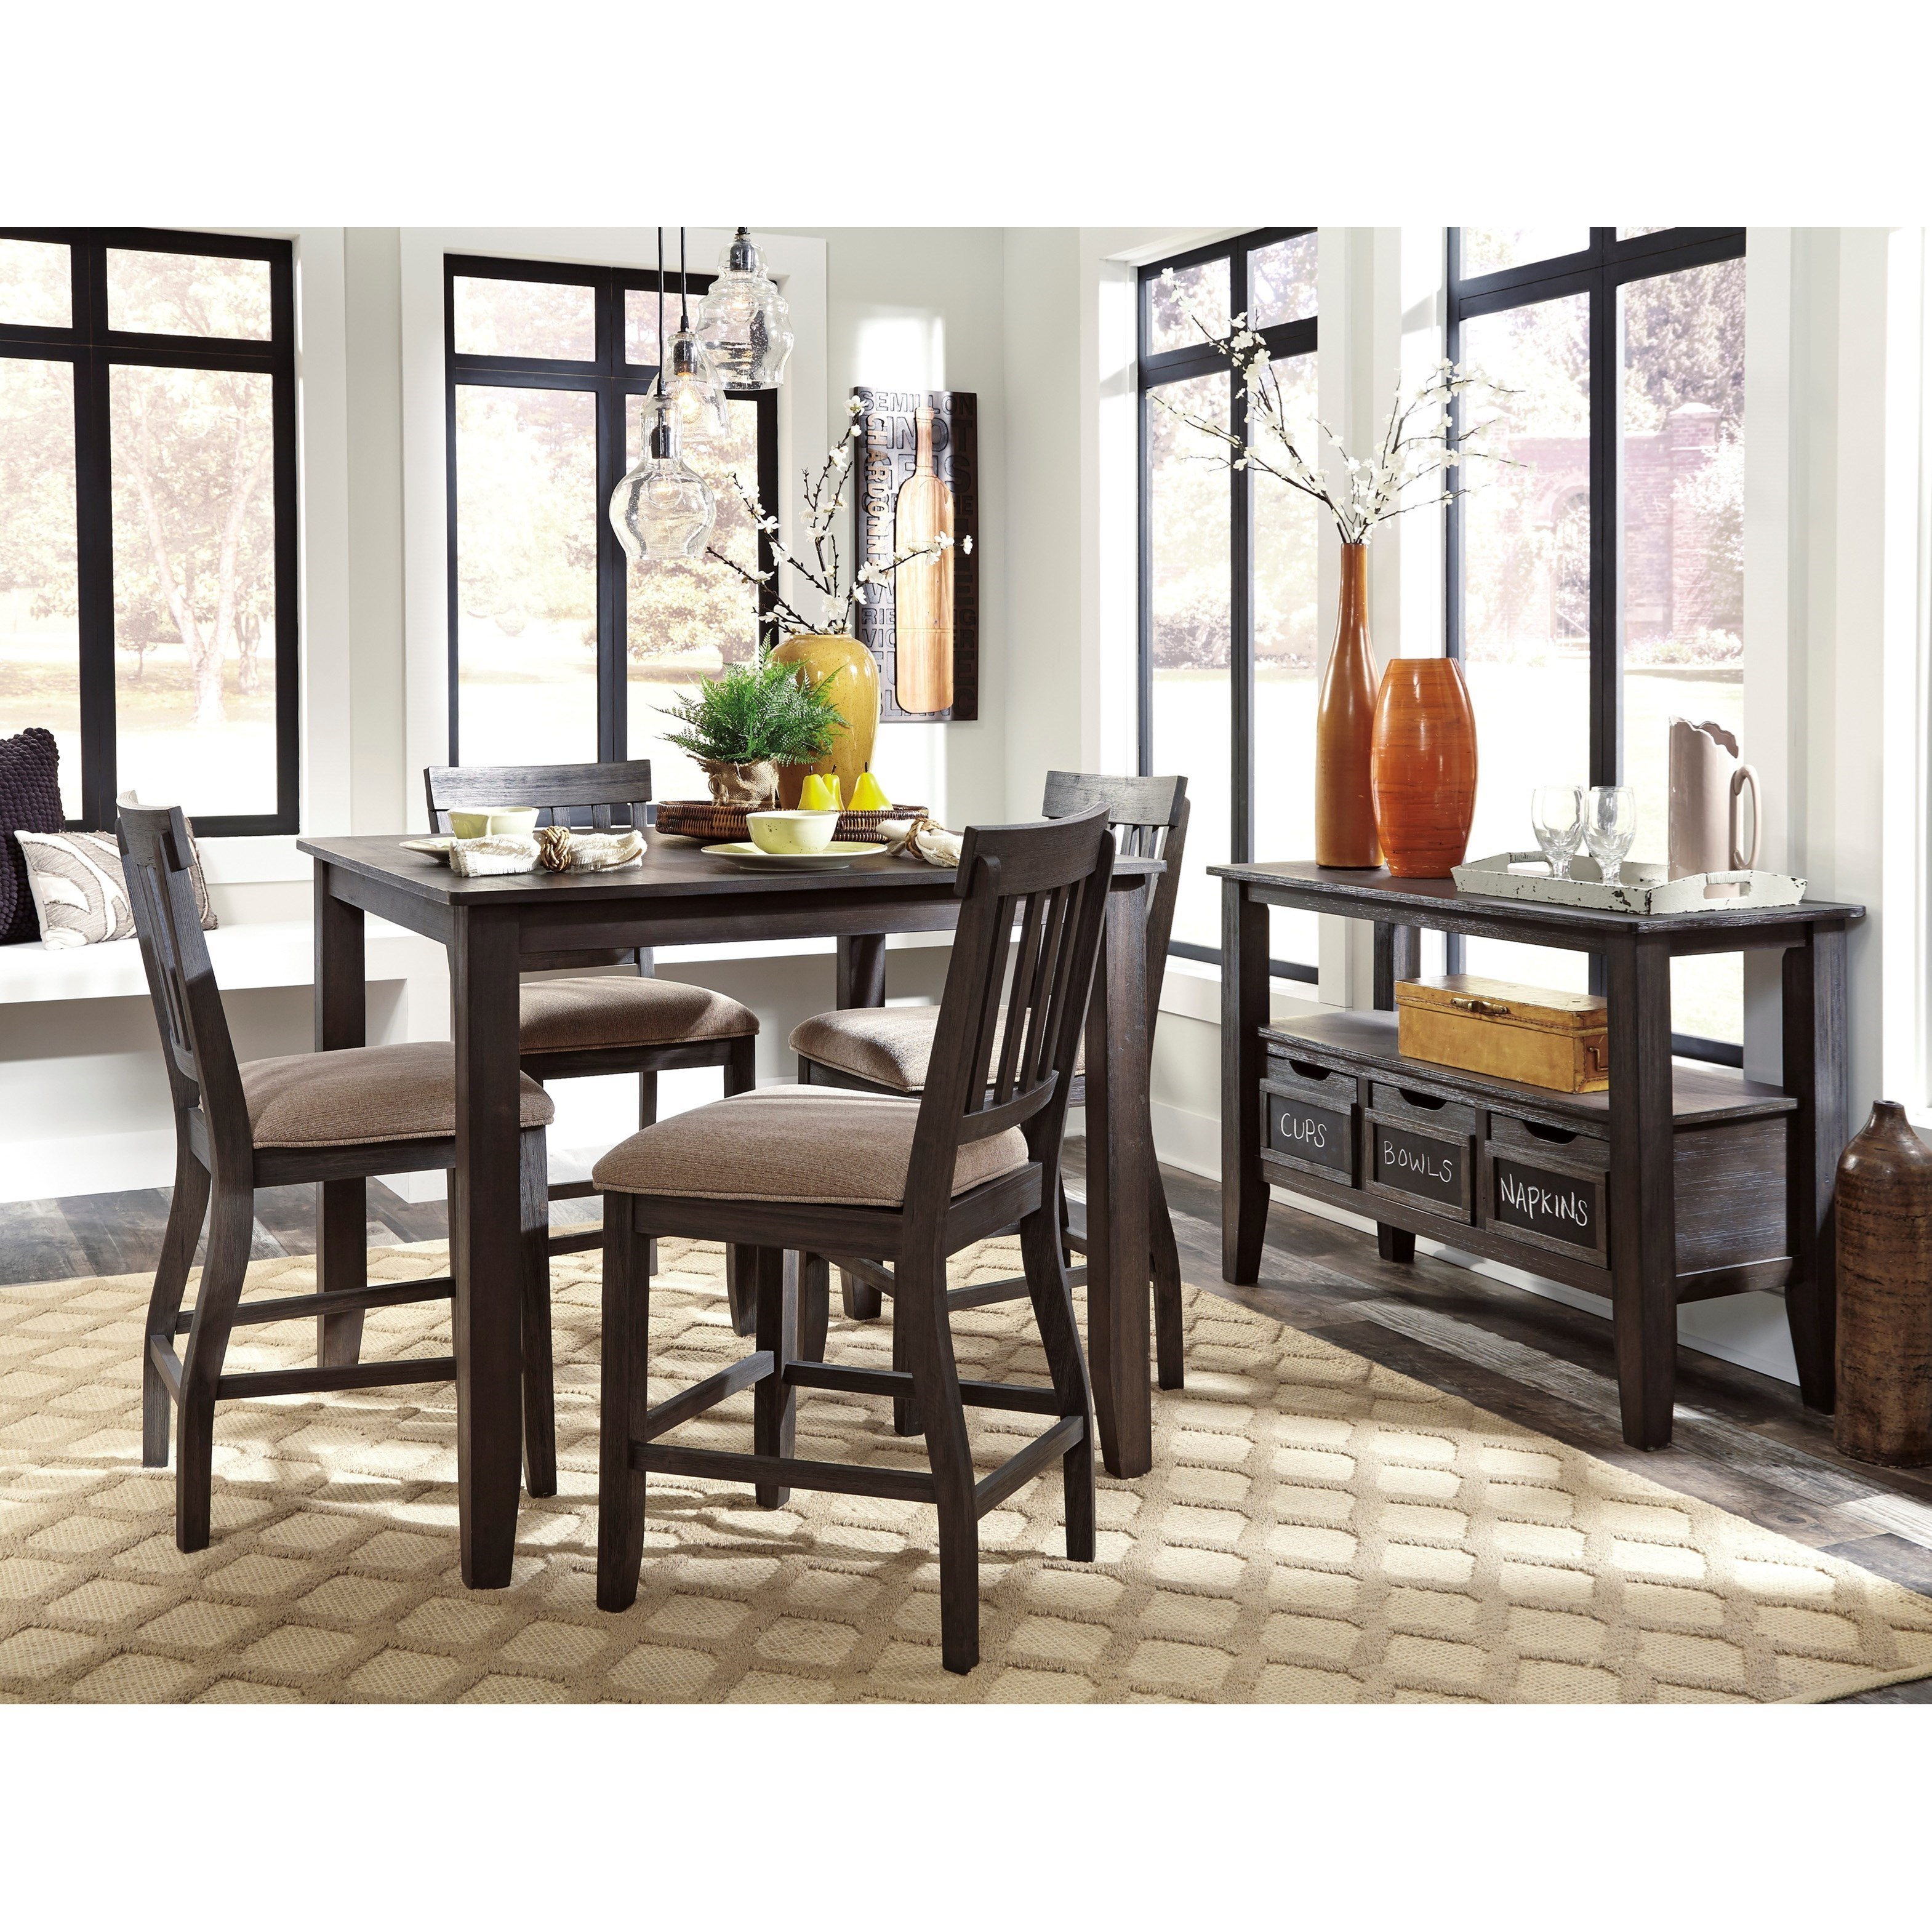 signature design by ashley dresbar casual dining room